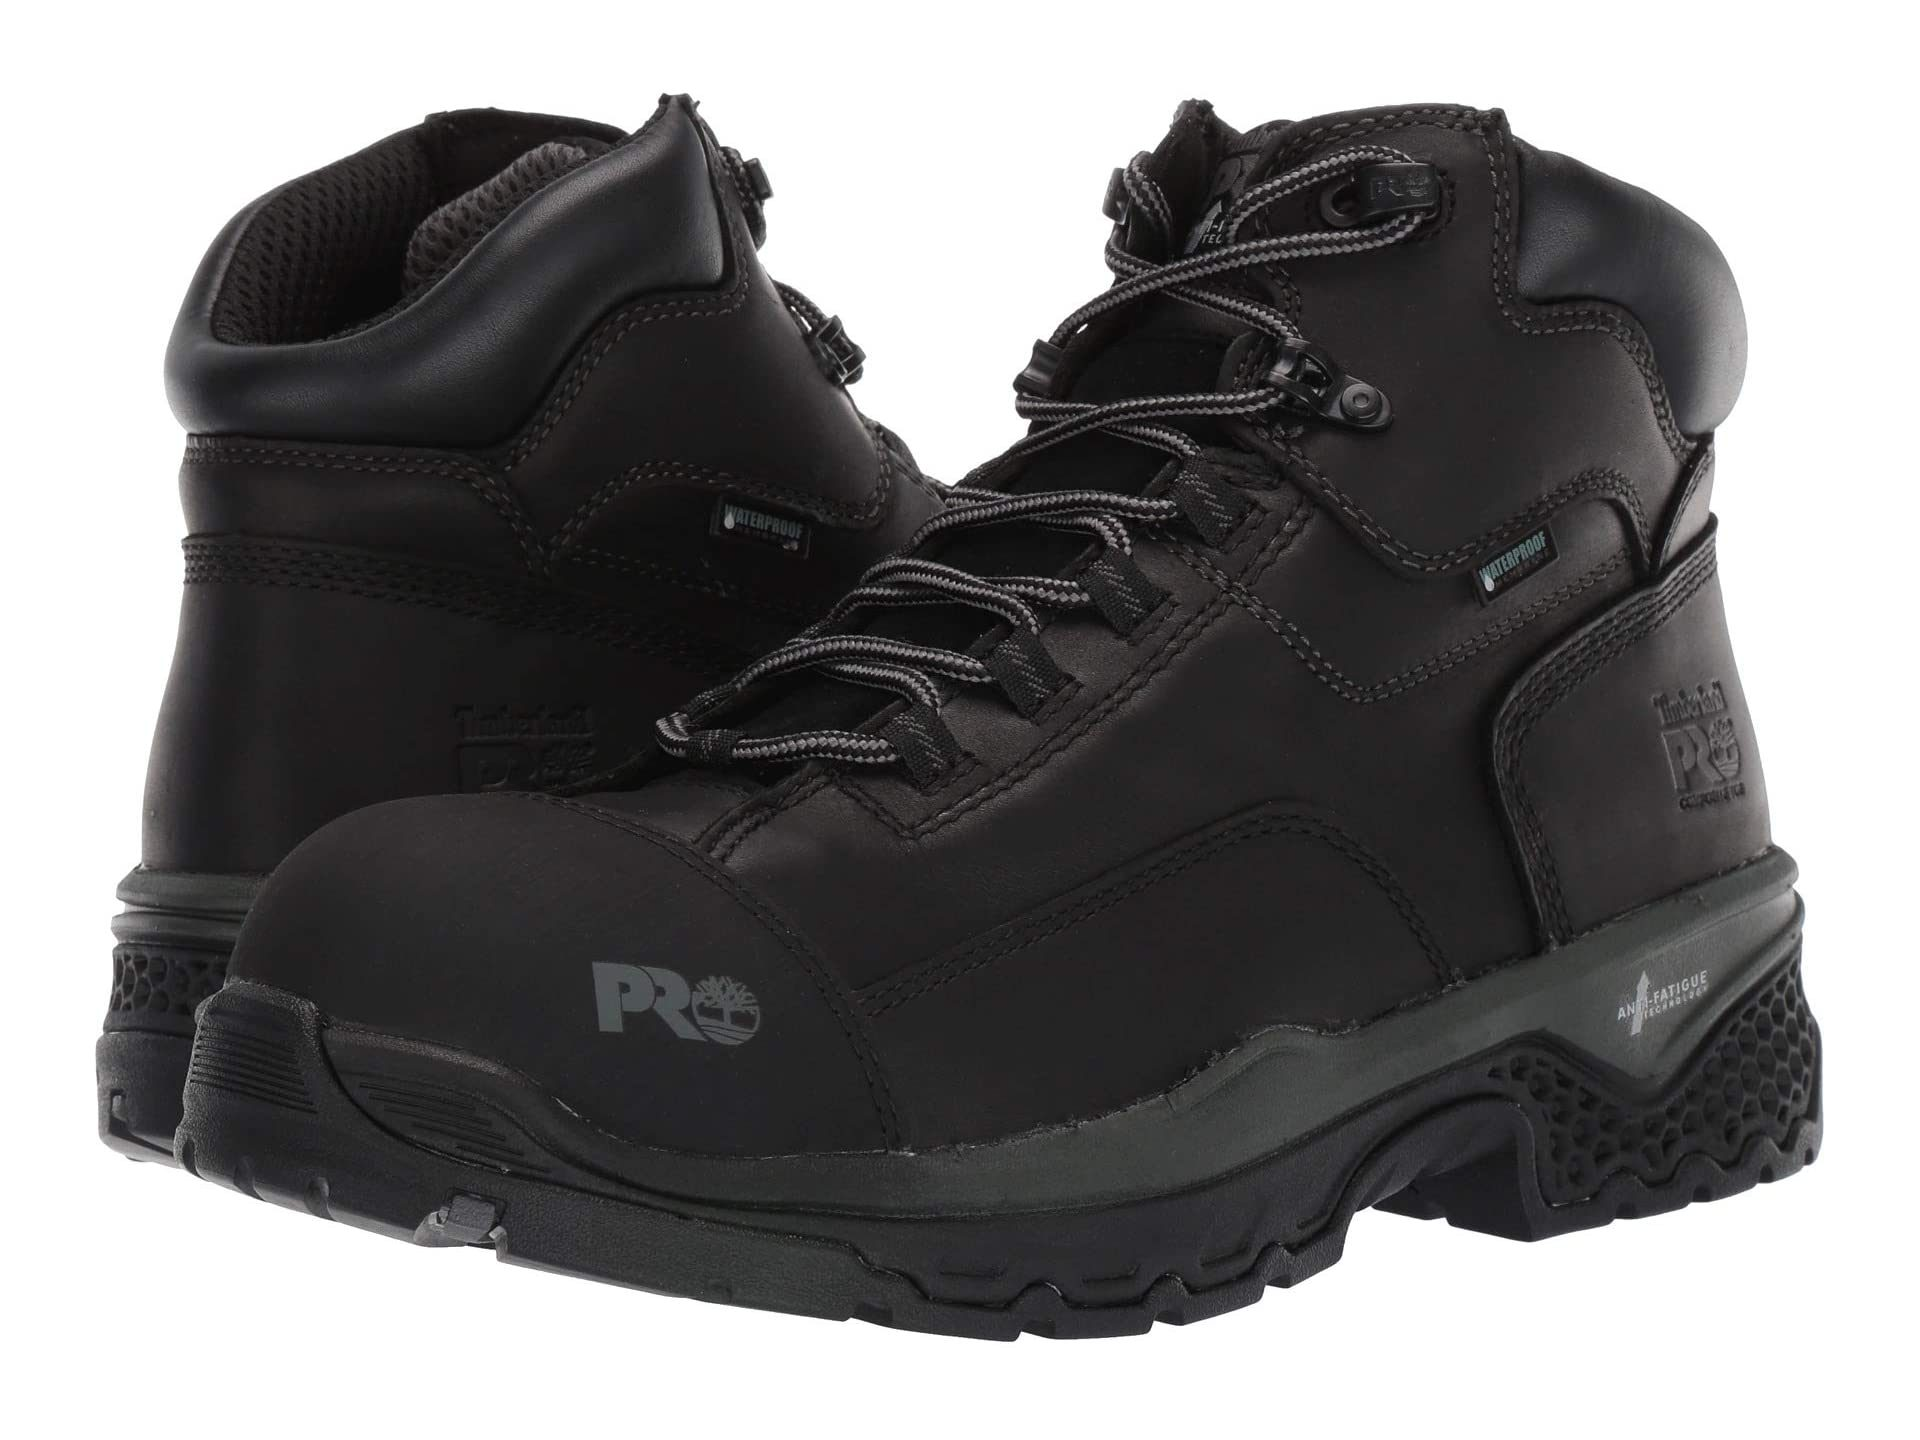 "Timberland PRO 6"" Bosshog Composite Safety Toe Waterproof work boot"